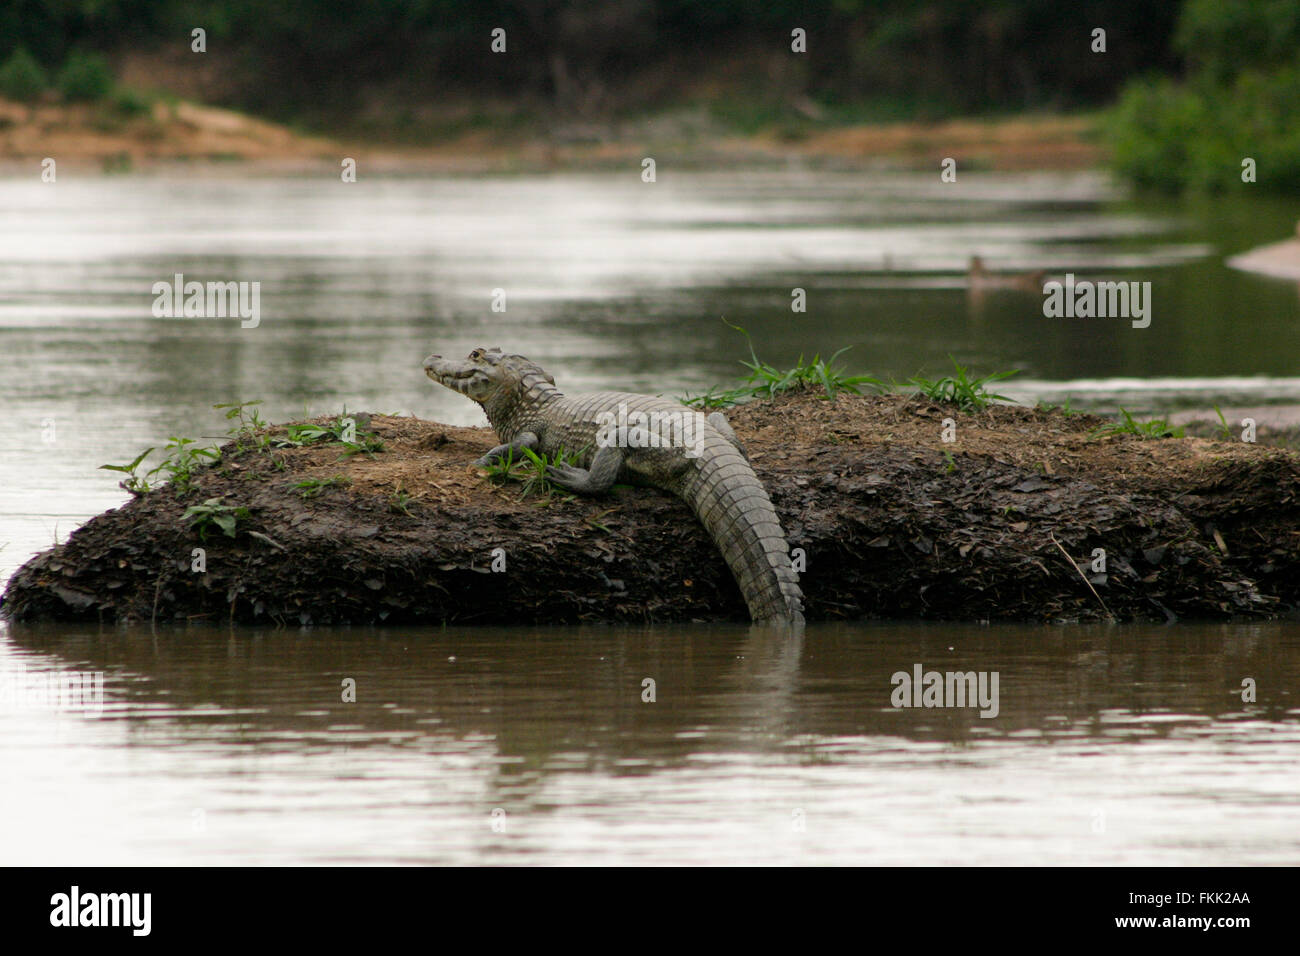 FKK - Brazil A lone Caiman resting on the banks of the river in the Pantanal, Brazil